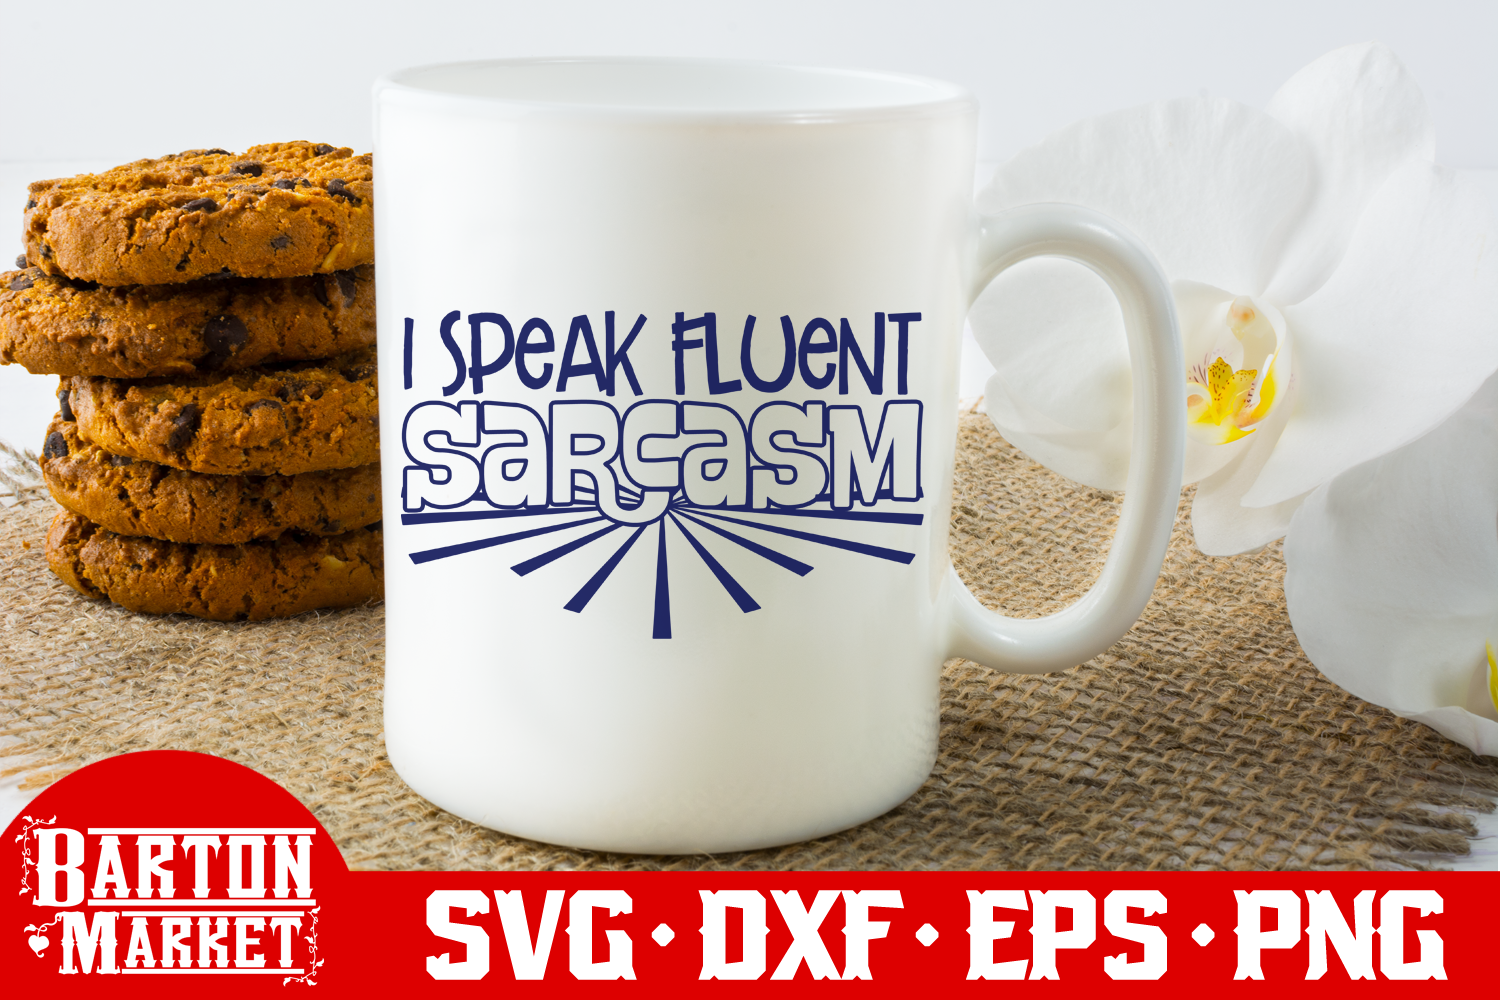 I Speak Fluent Sarcasm SVG DXF EPS PNG example image 2